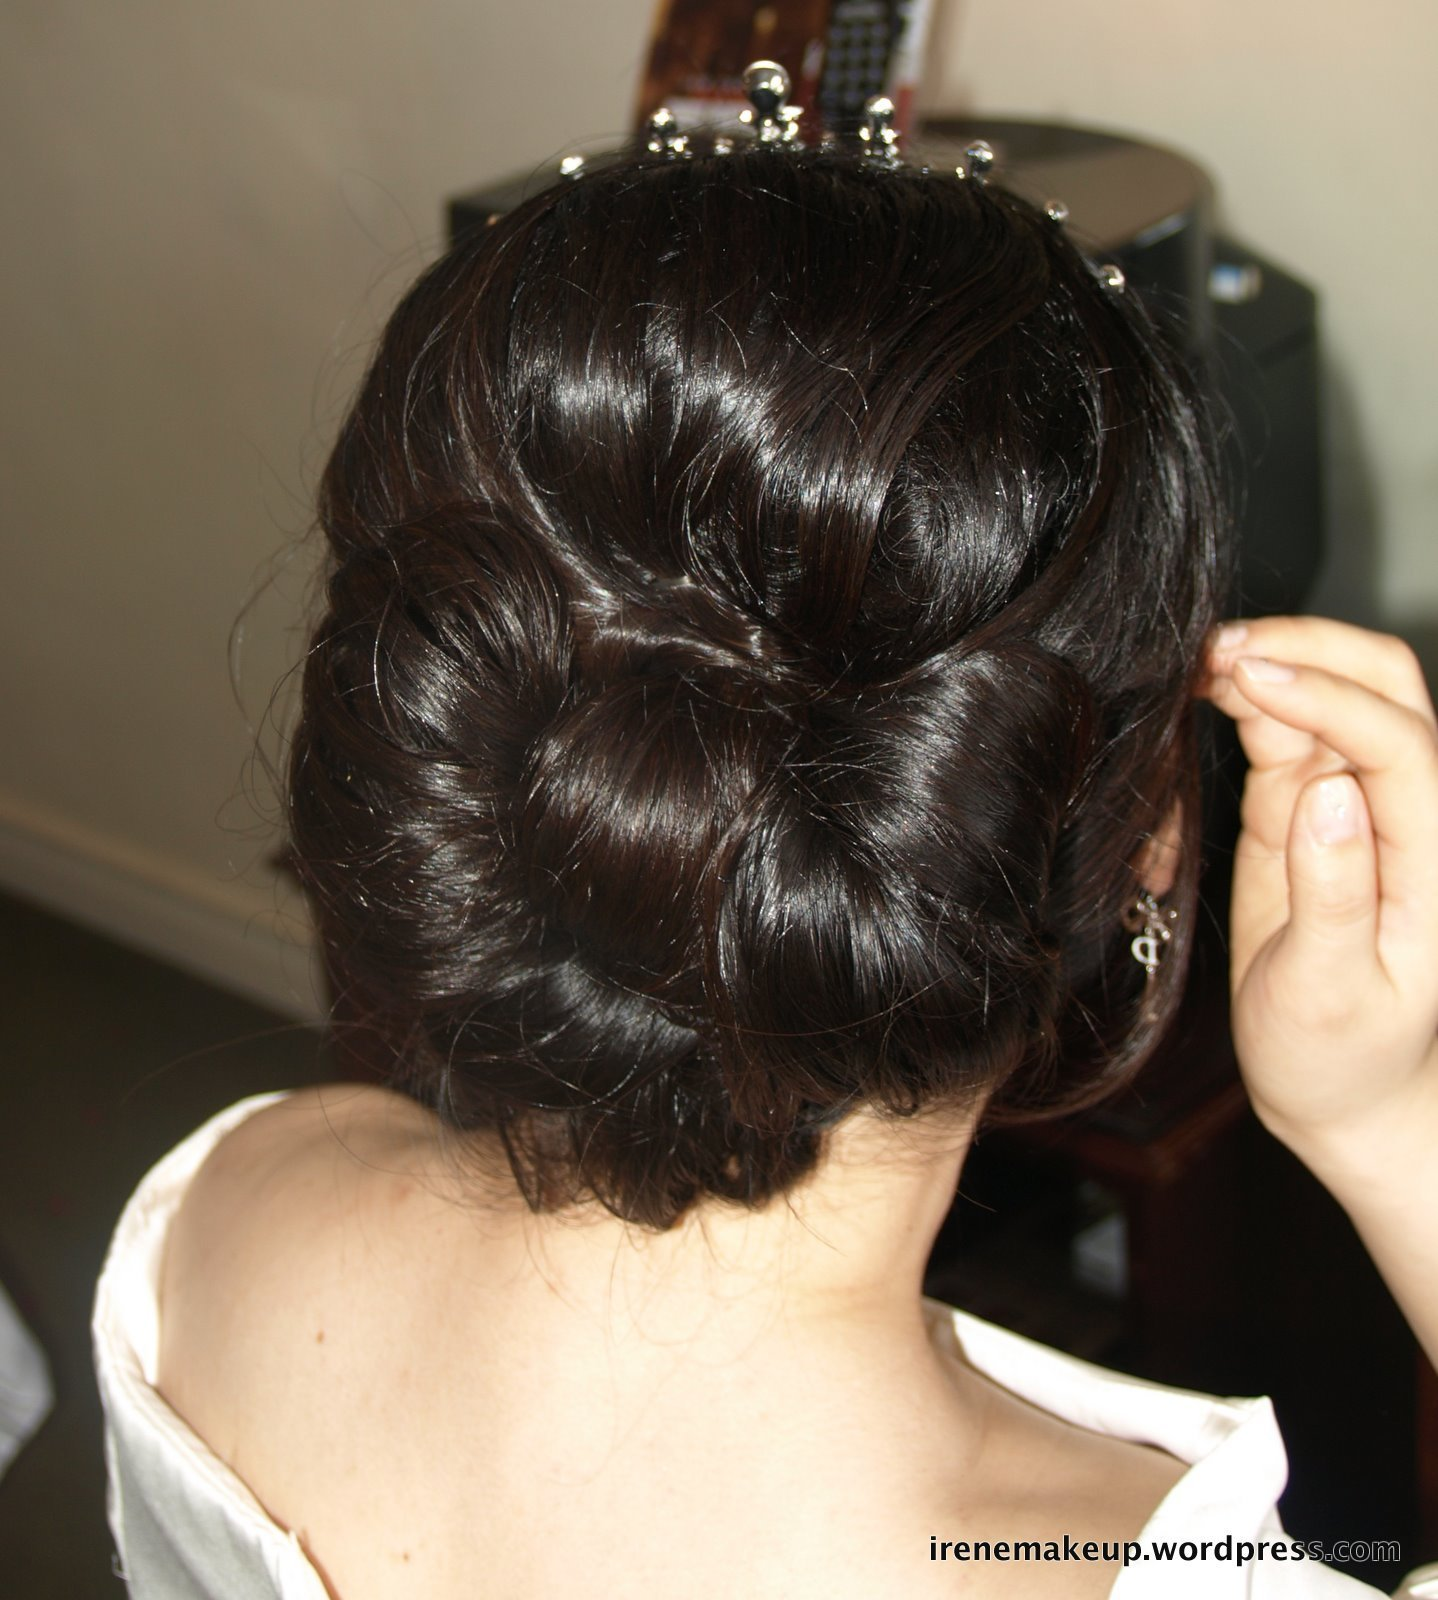 The Best Chinese Bridal Hairstyles Classic Sleek Updo 新娘盘头发型 Pictures